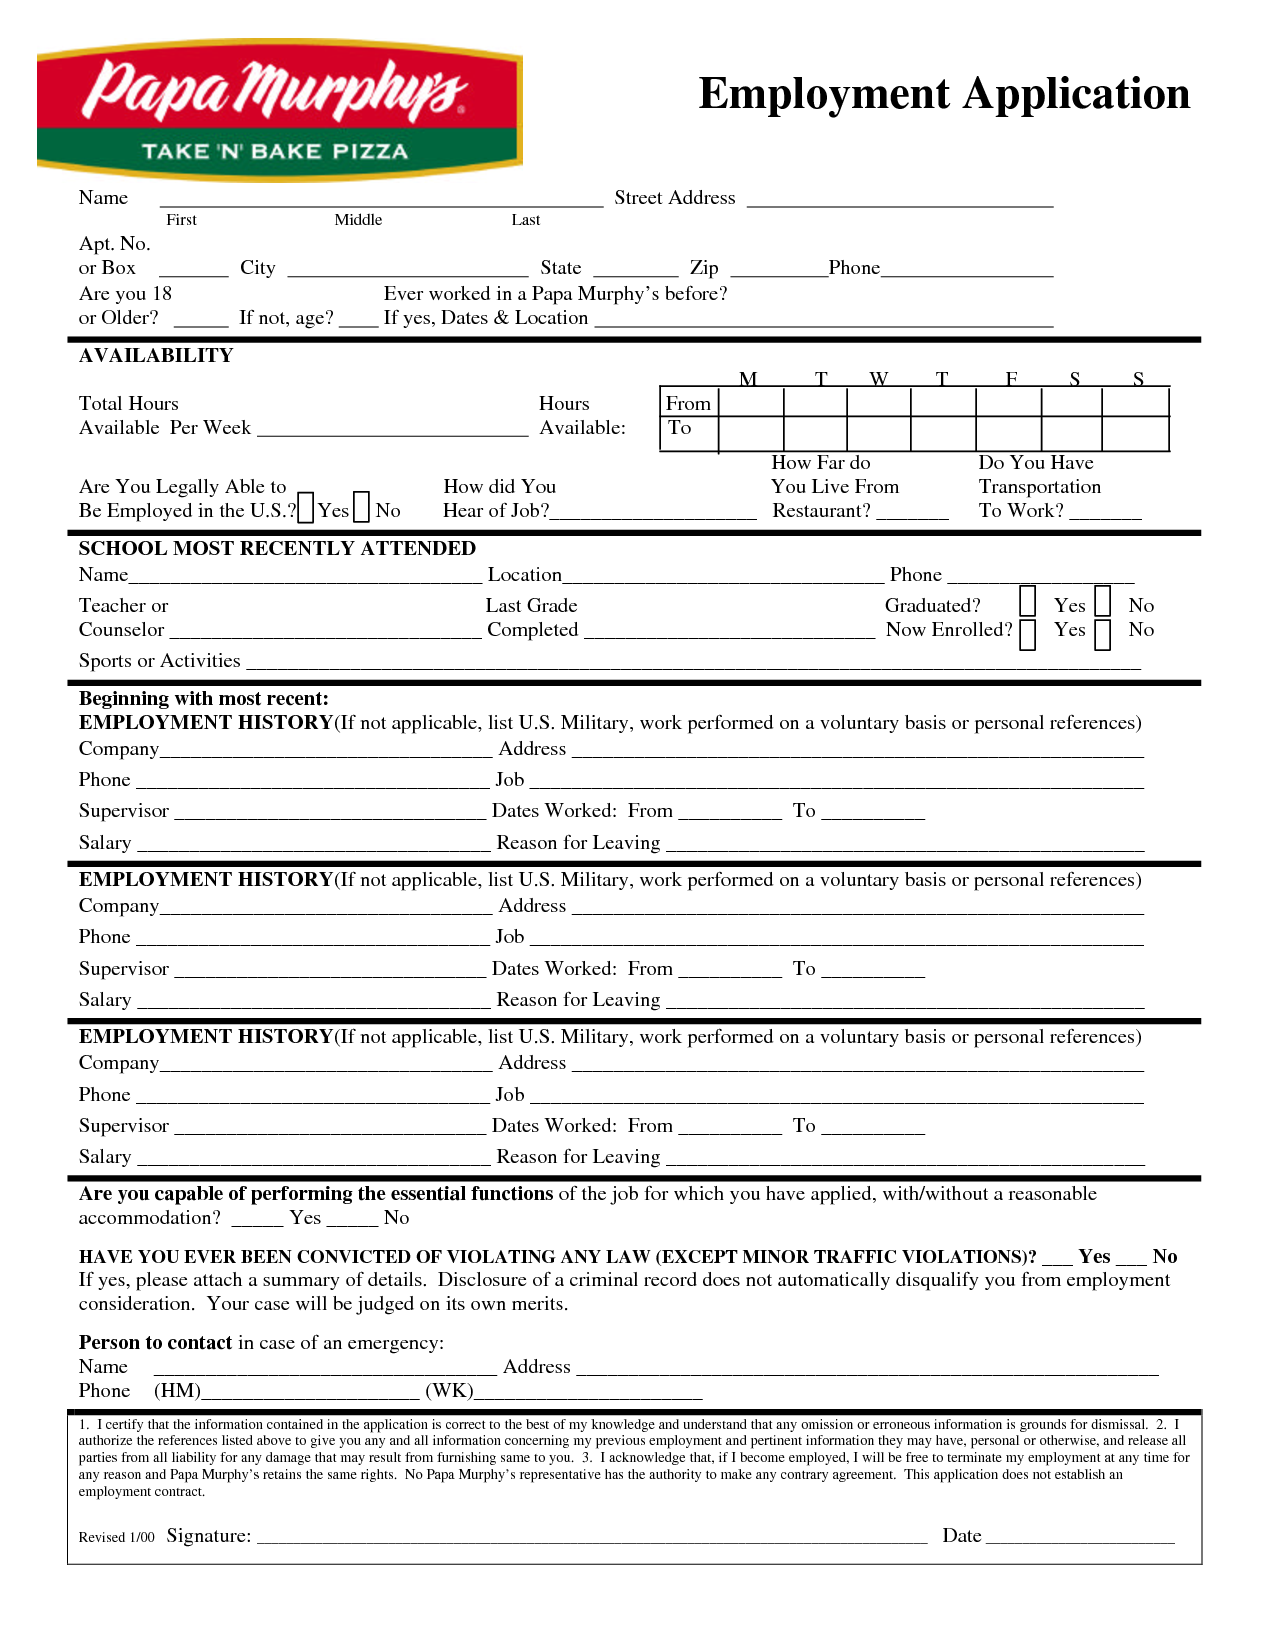 papa murphy\'s application print out | Papa Murphy\'s Employment ...